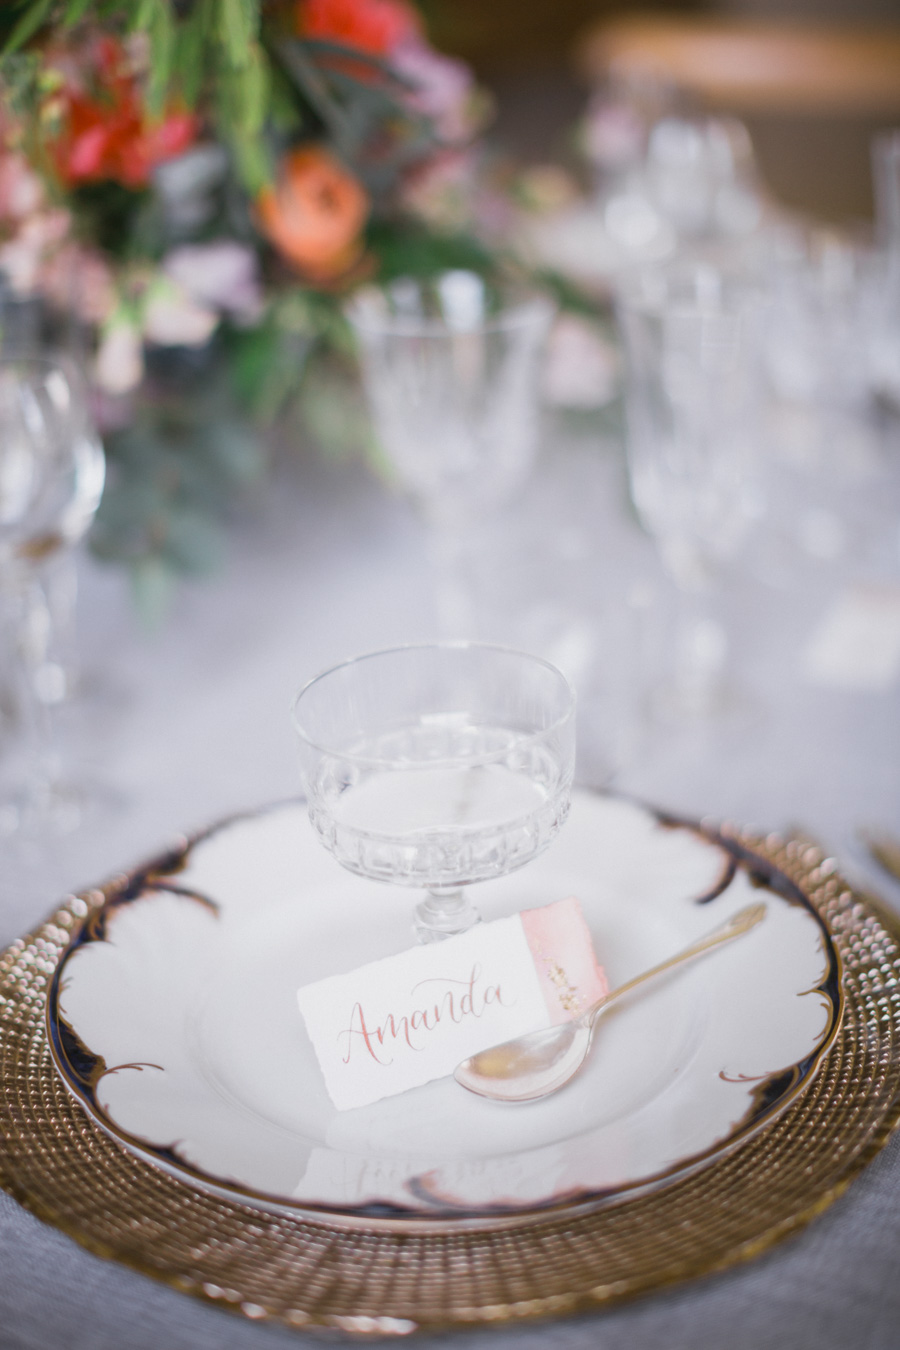 Divine wedding styling with English country garden florals at Pauntley Court, photo credit Red Maple Photography (27)